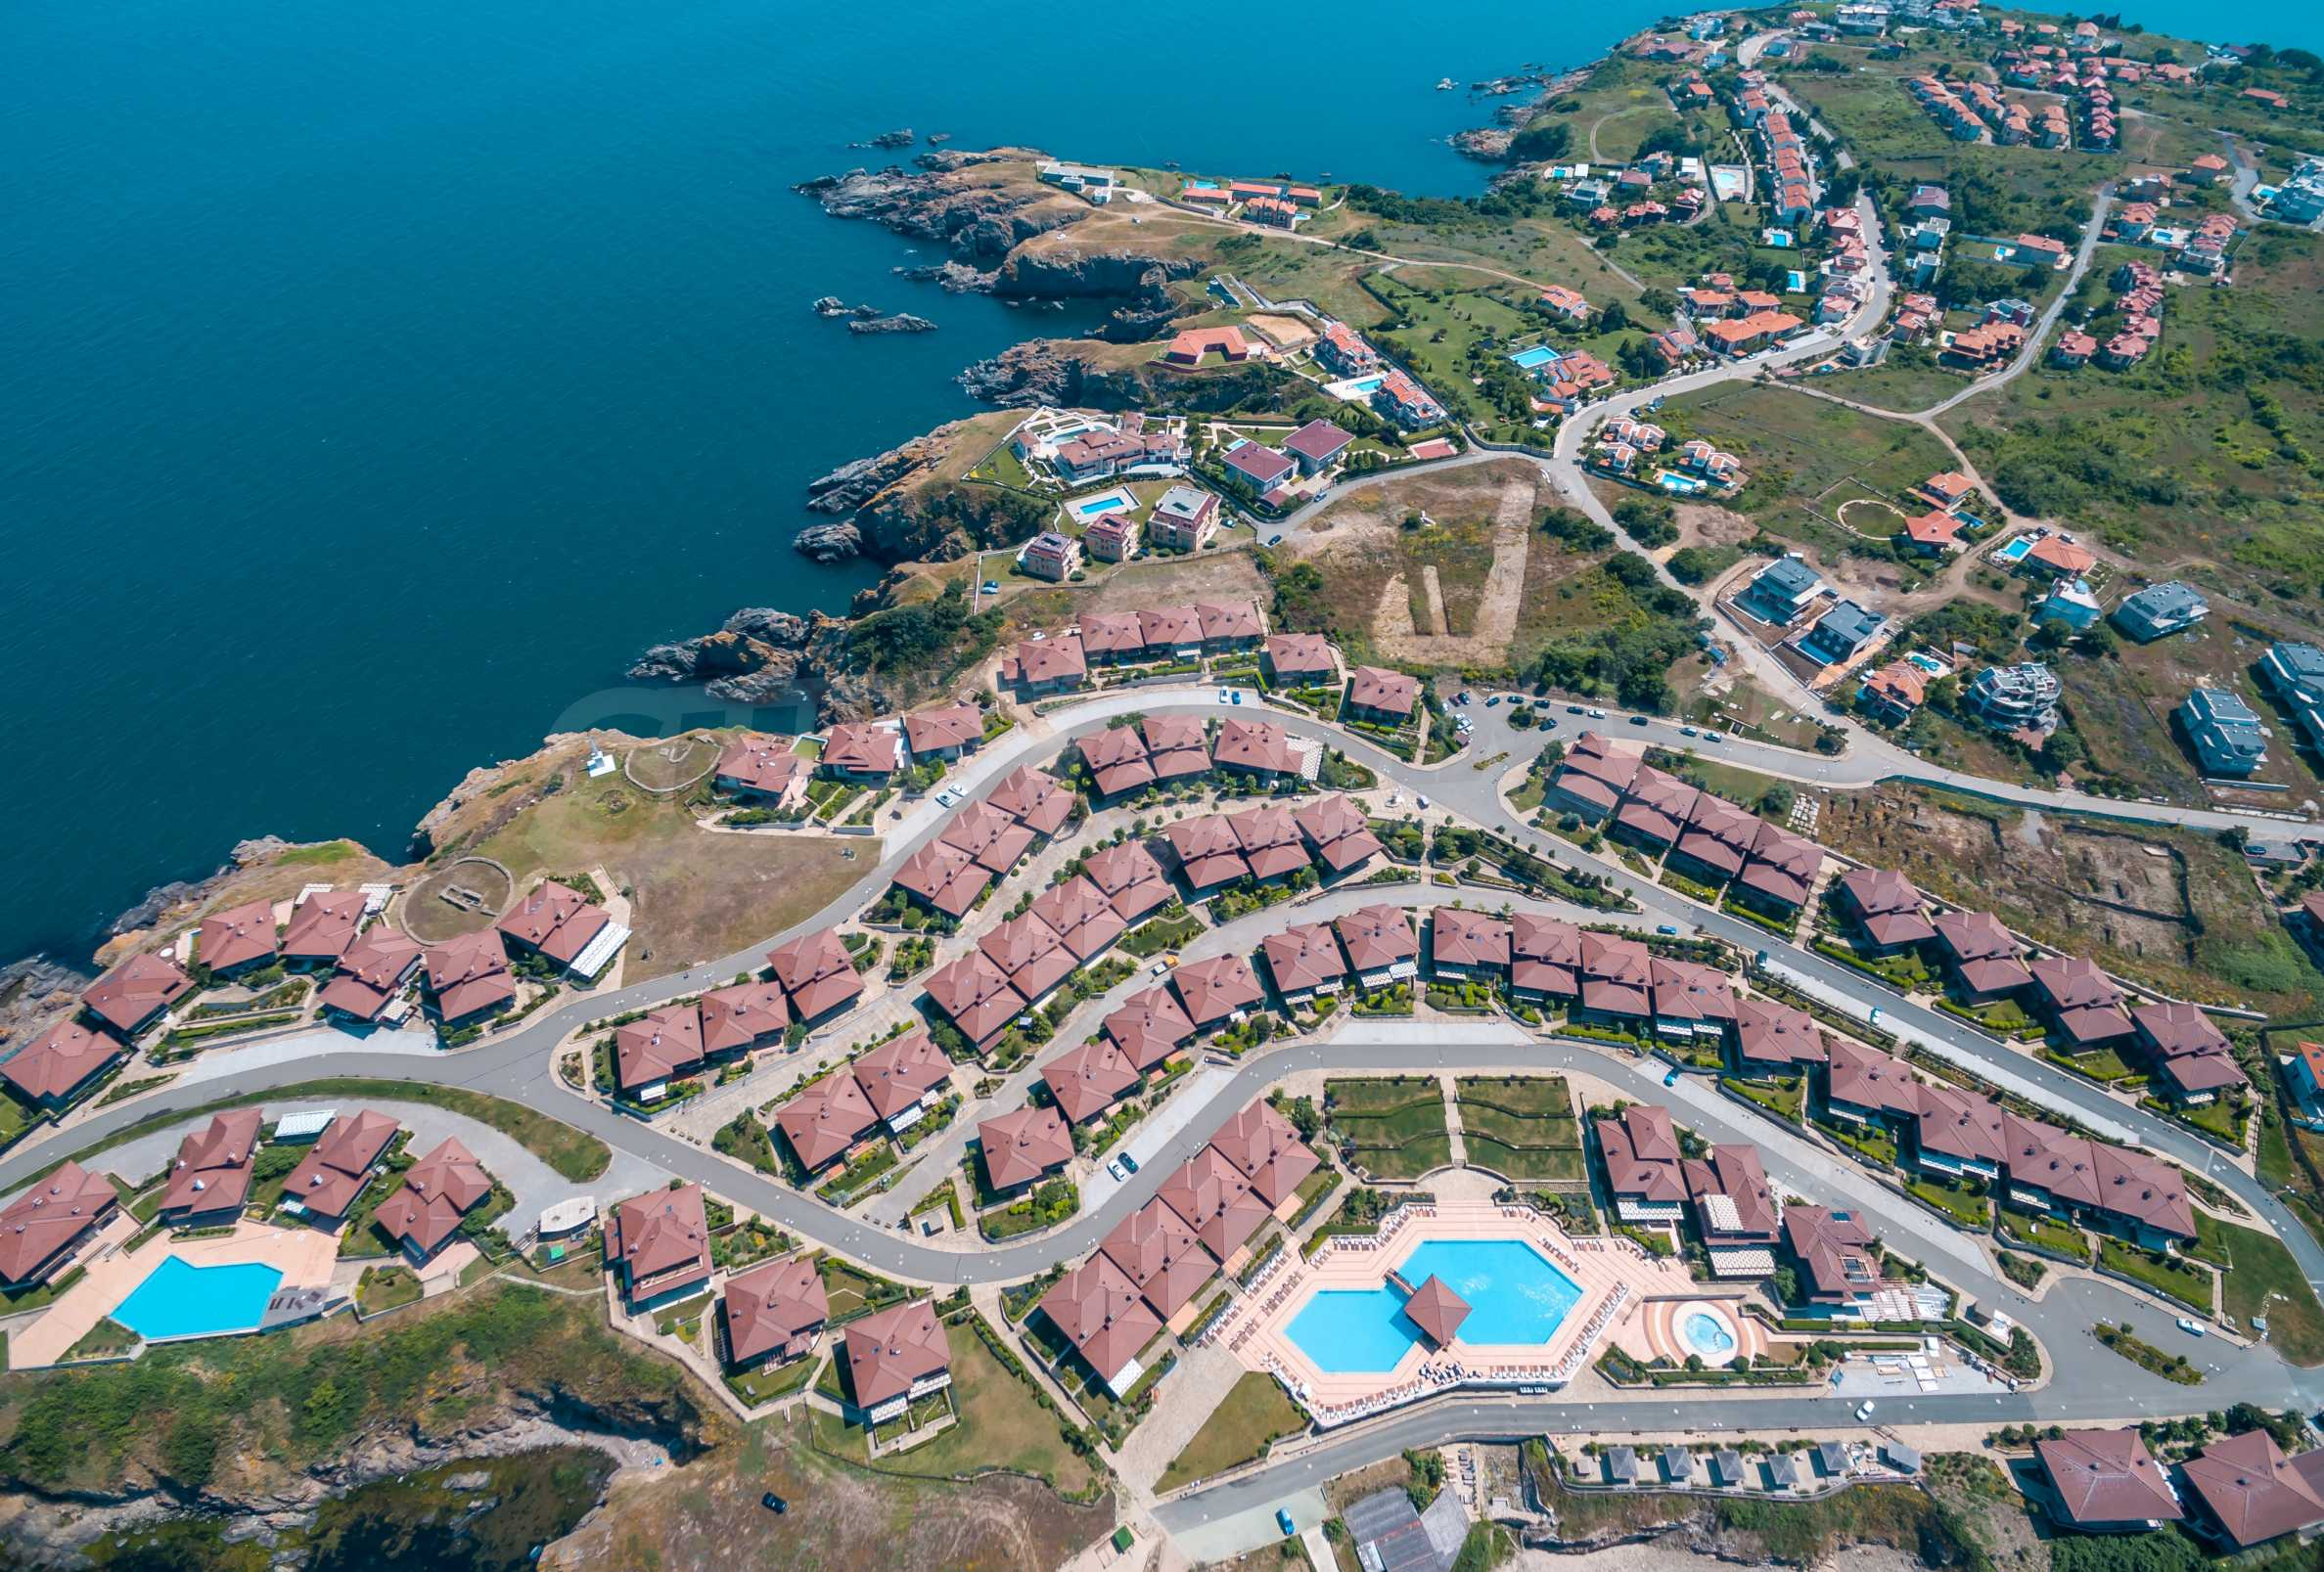 Sozopolis - unique coastal complex of townhouses and apartments near Sozopol 56